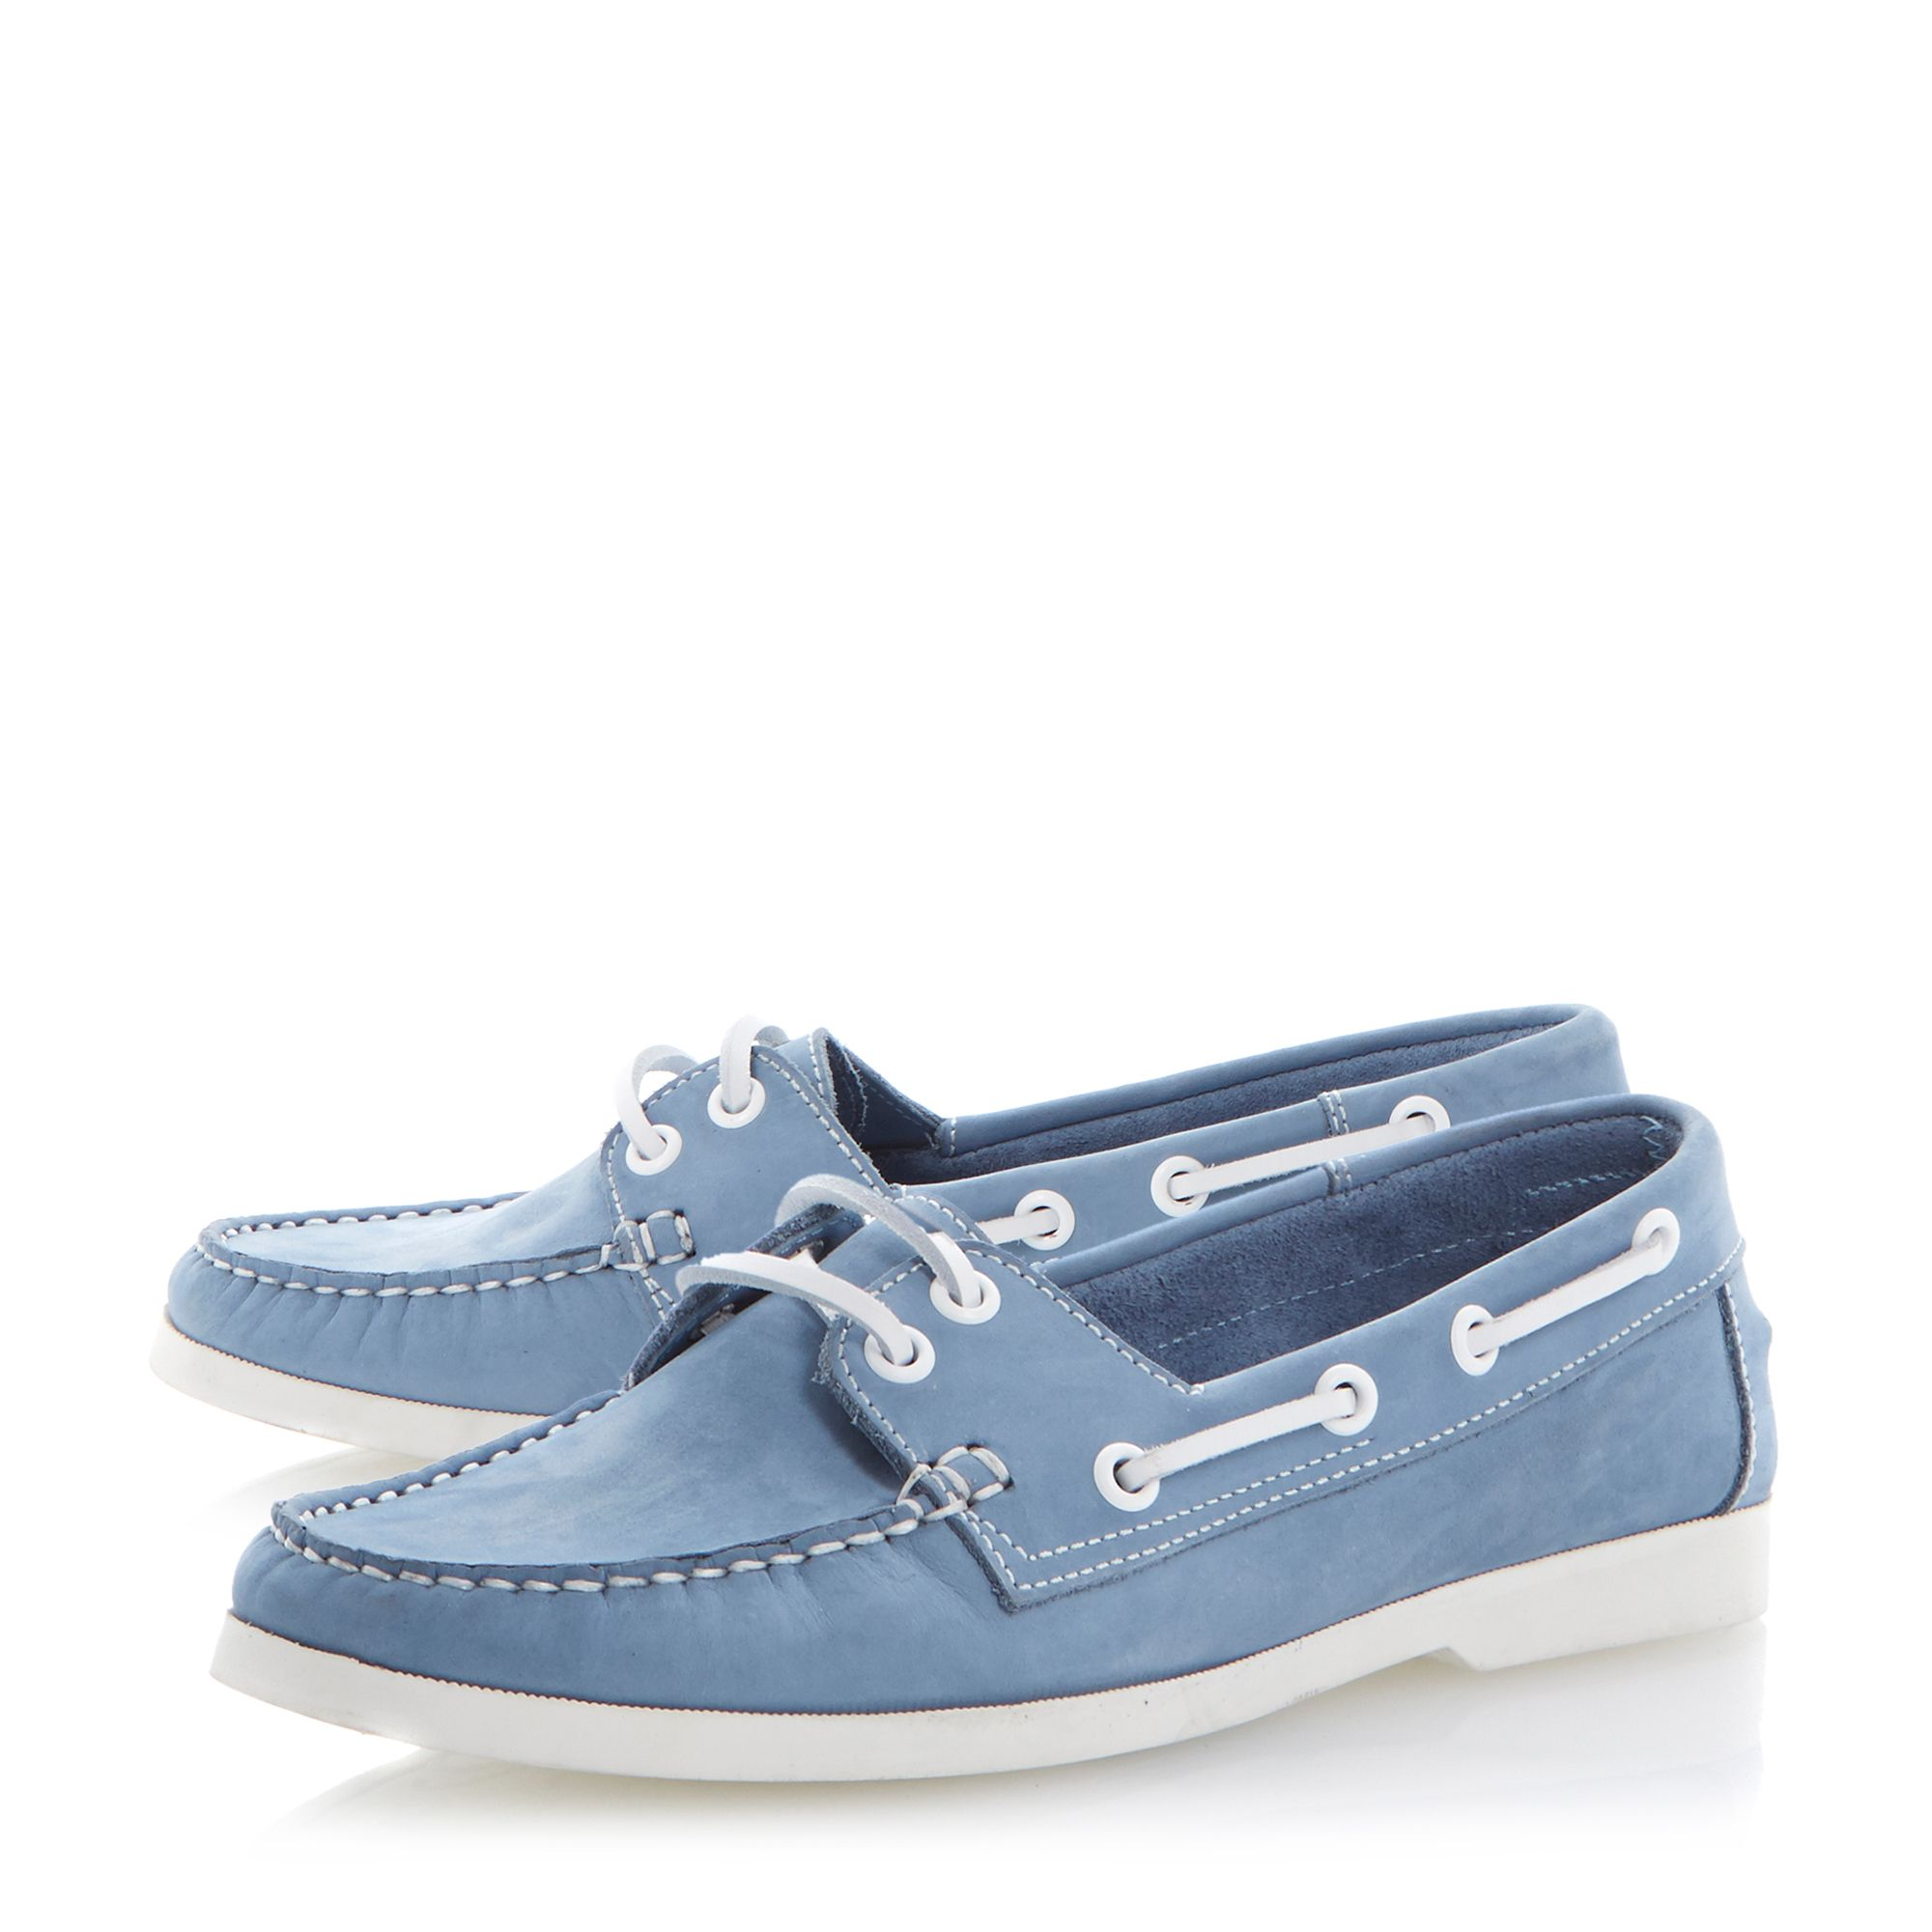 Linken round toe flat laced boat shoes